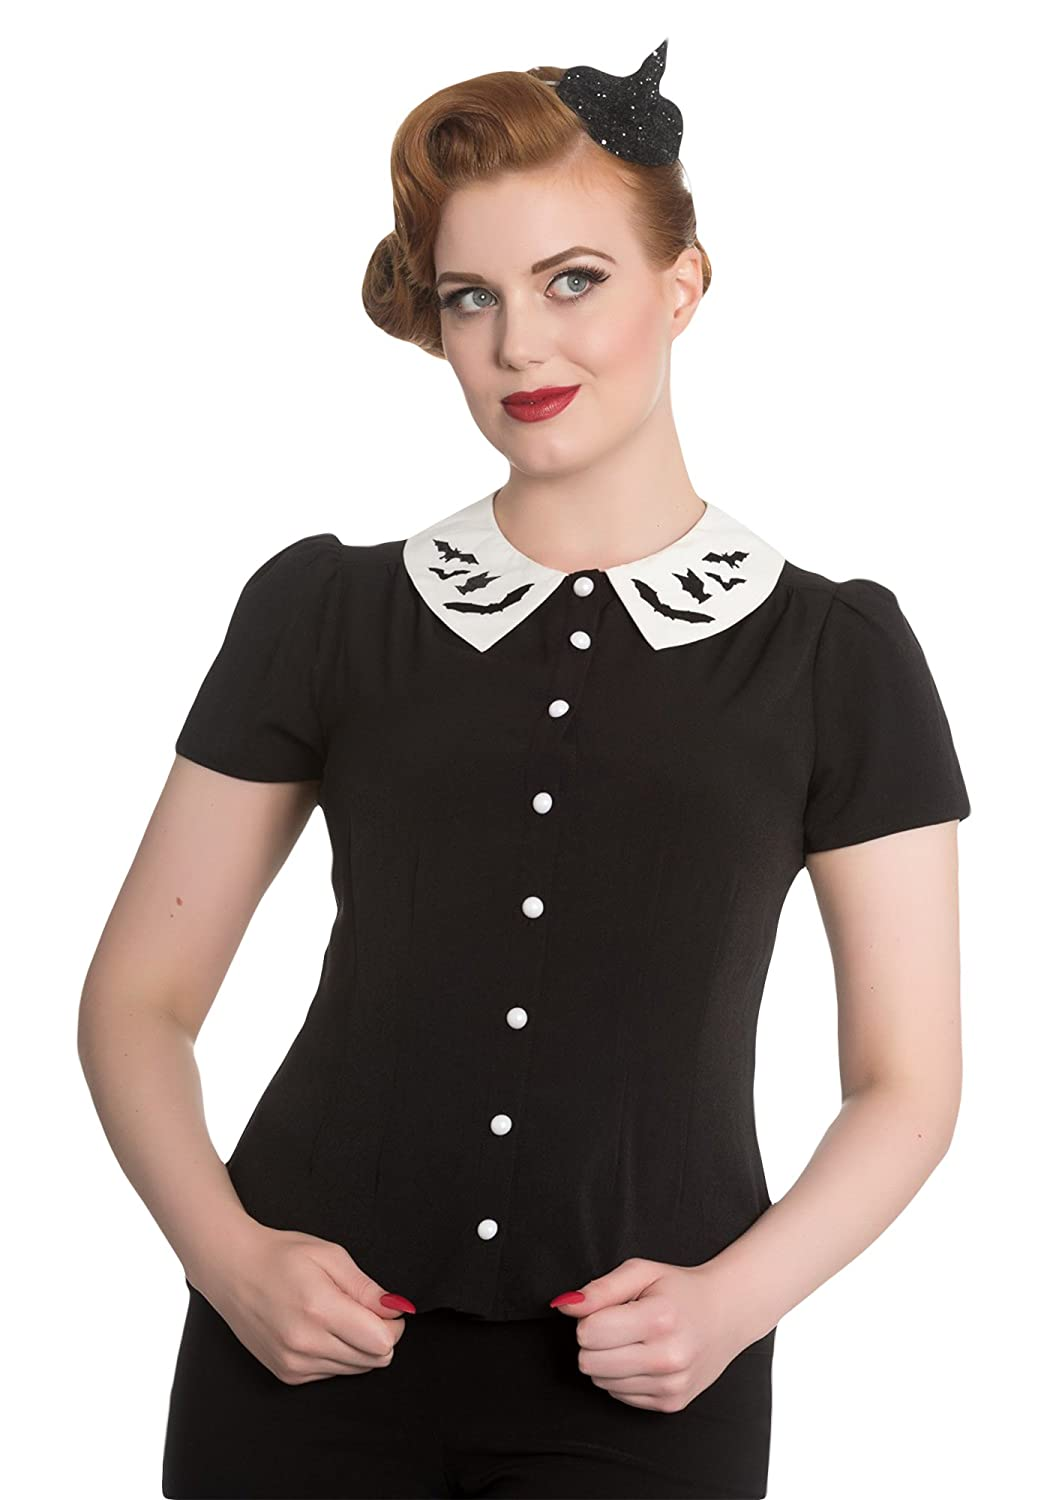 Vintage Retro Halloween Themed Clothing Hell Bunny Peter Pan Collar Full Moon Bat Blouse $42.90 AT vintagedancer.com